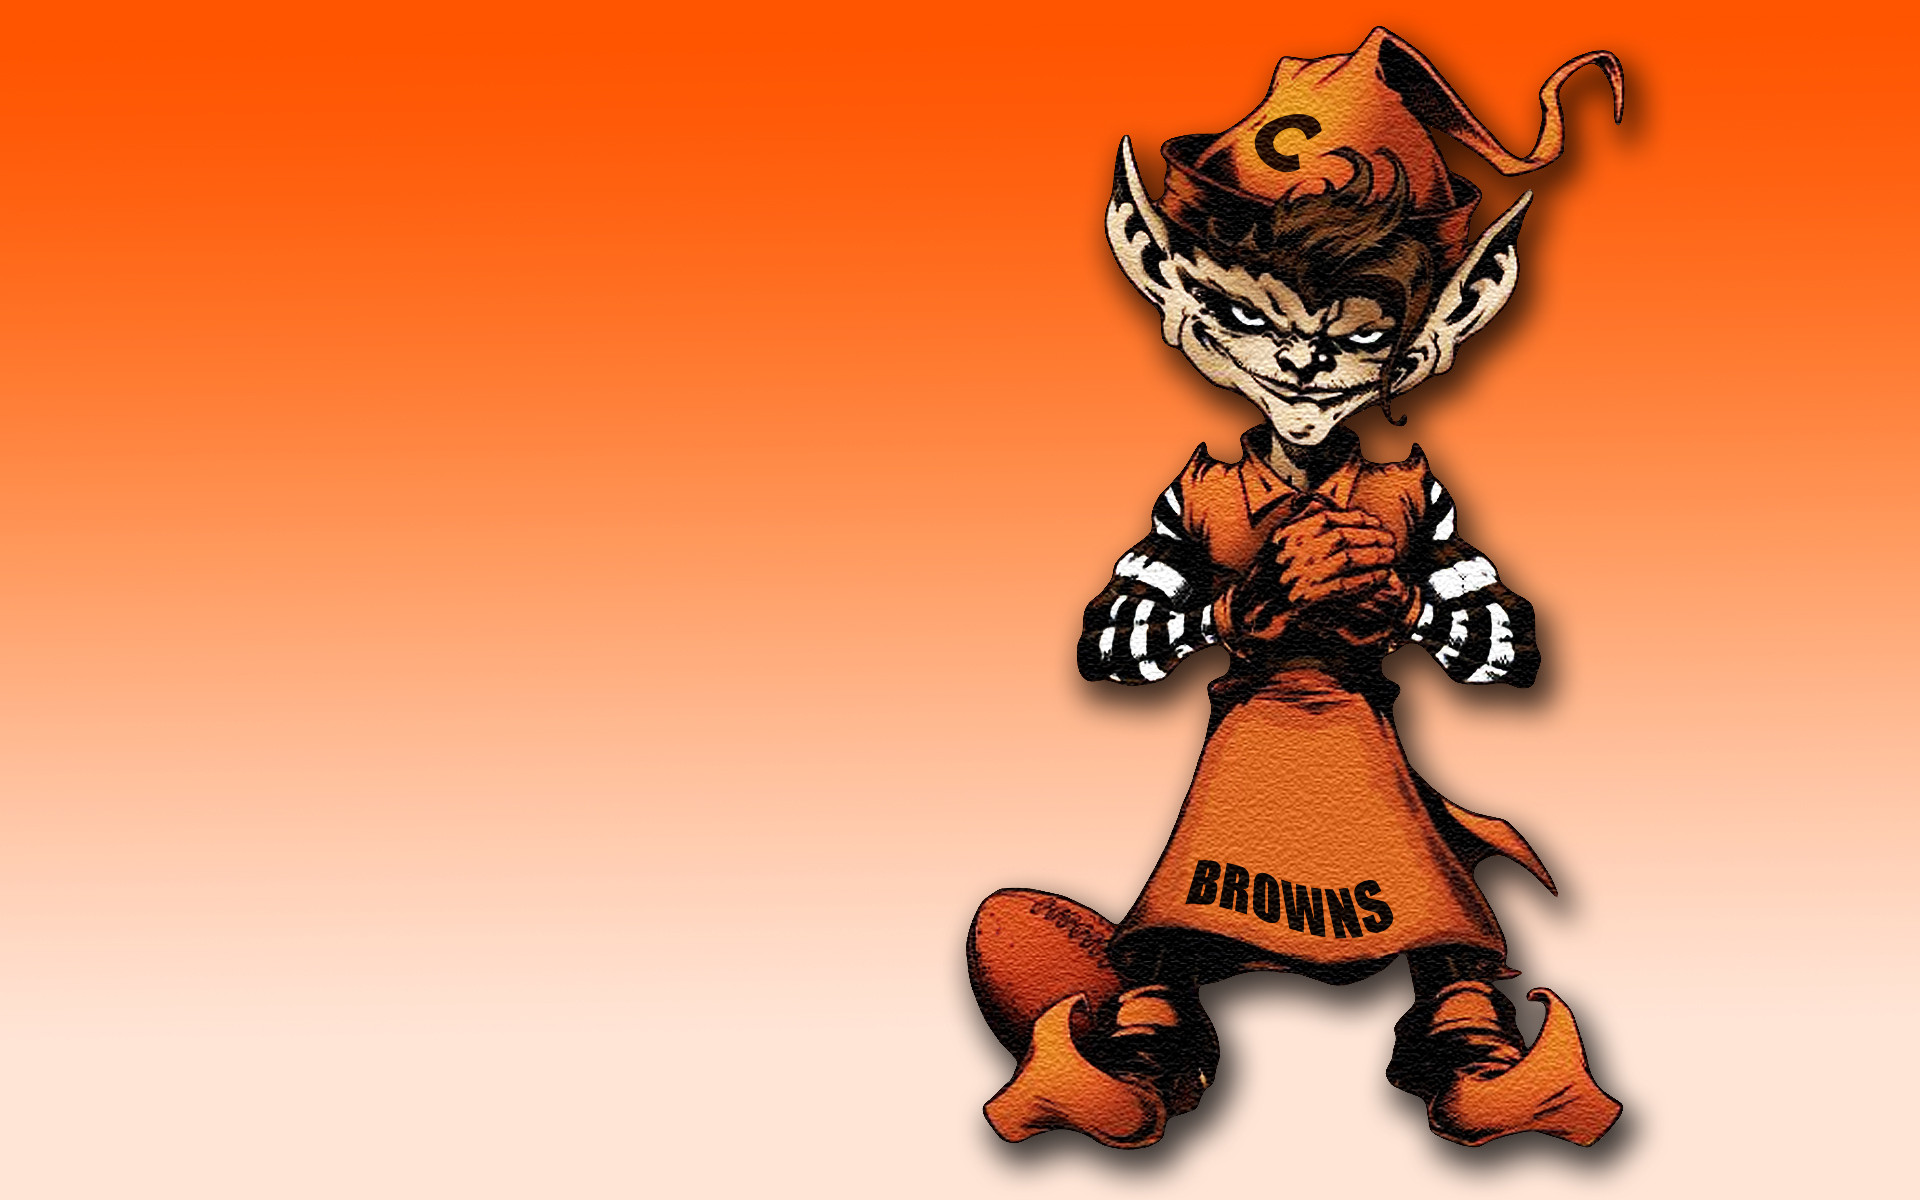 cleveland browns wallpaper 1920x1200